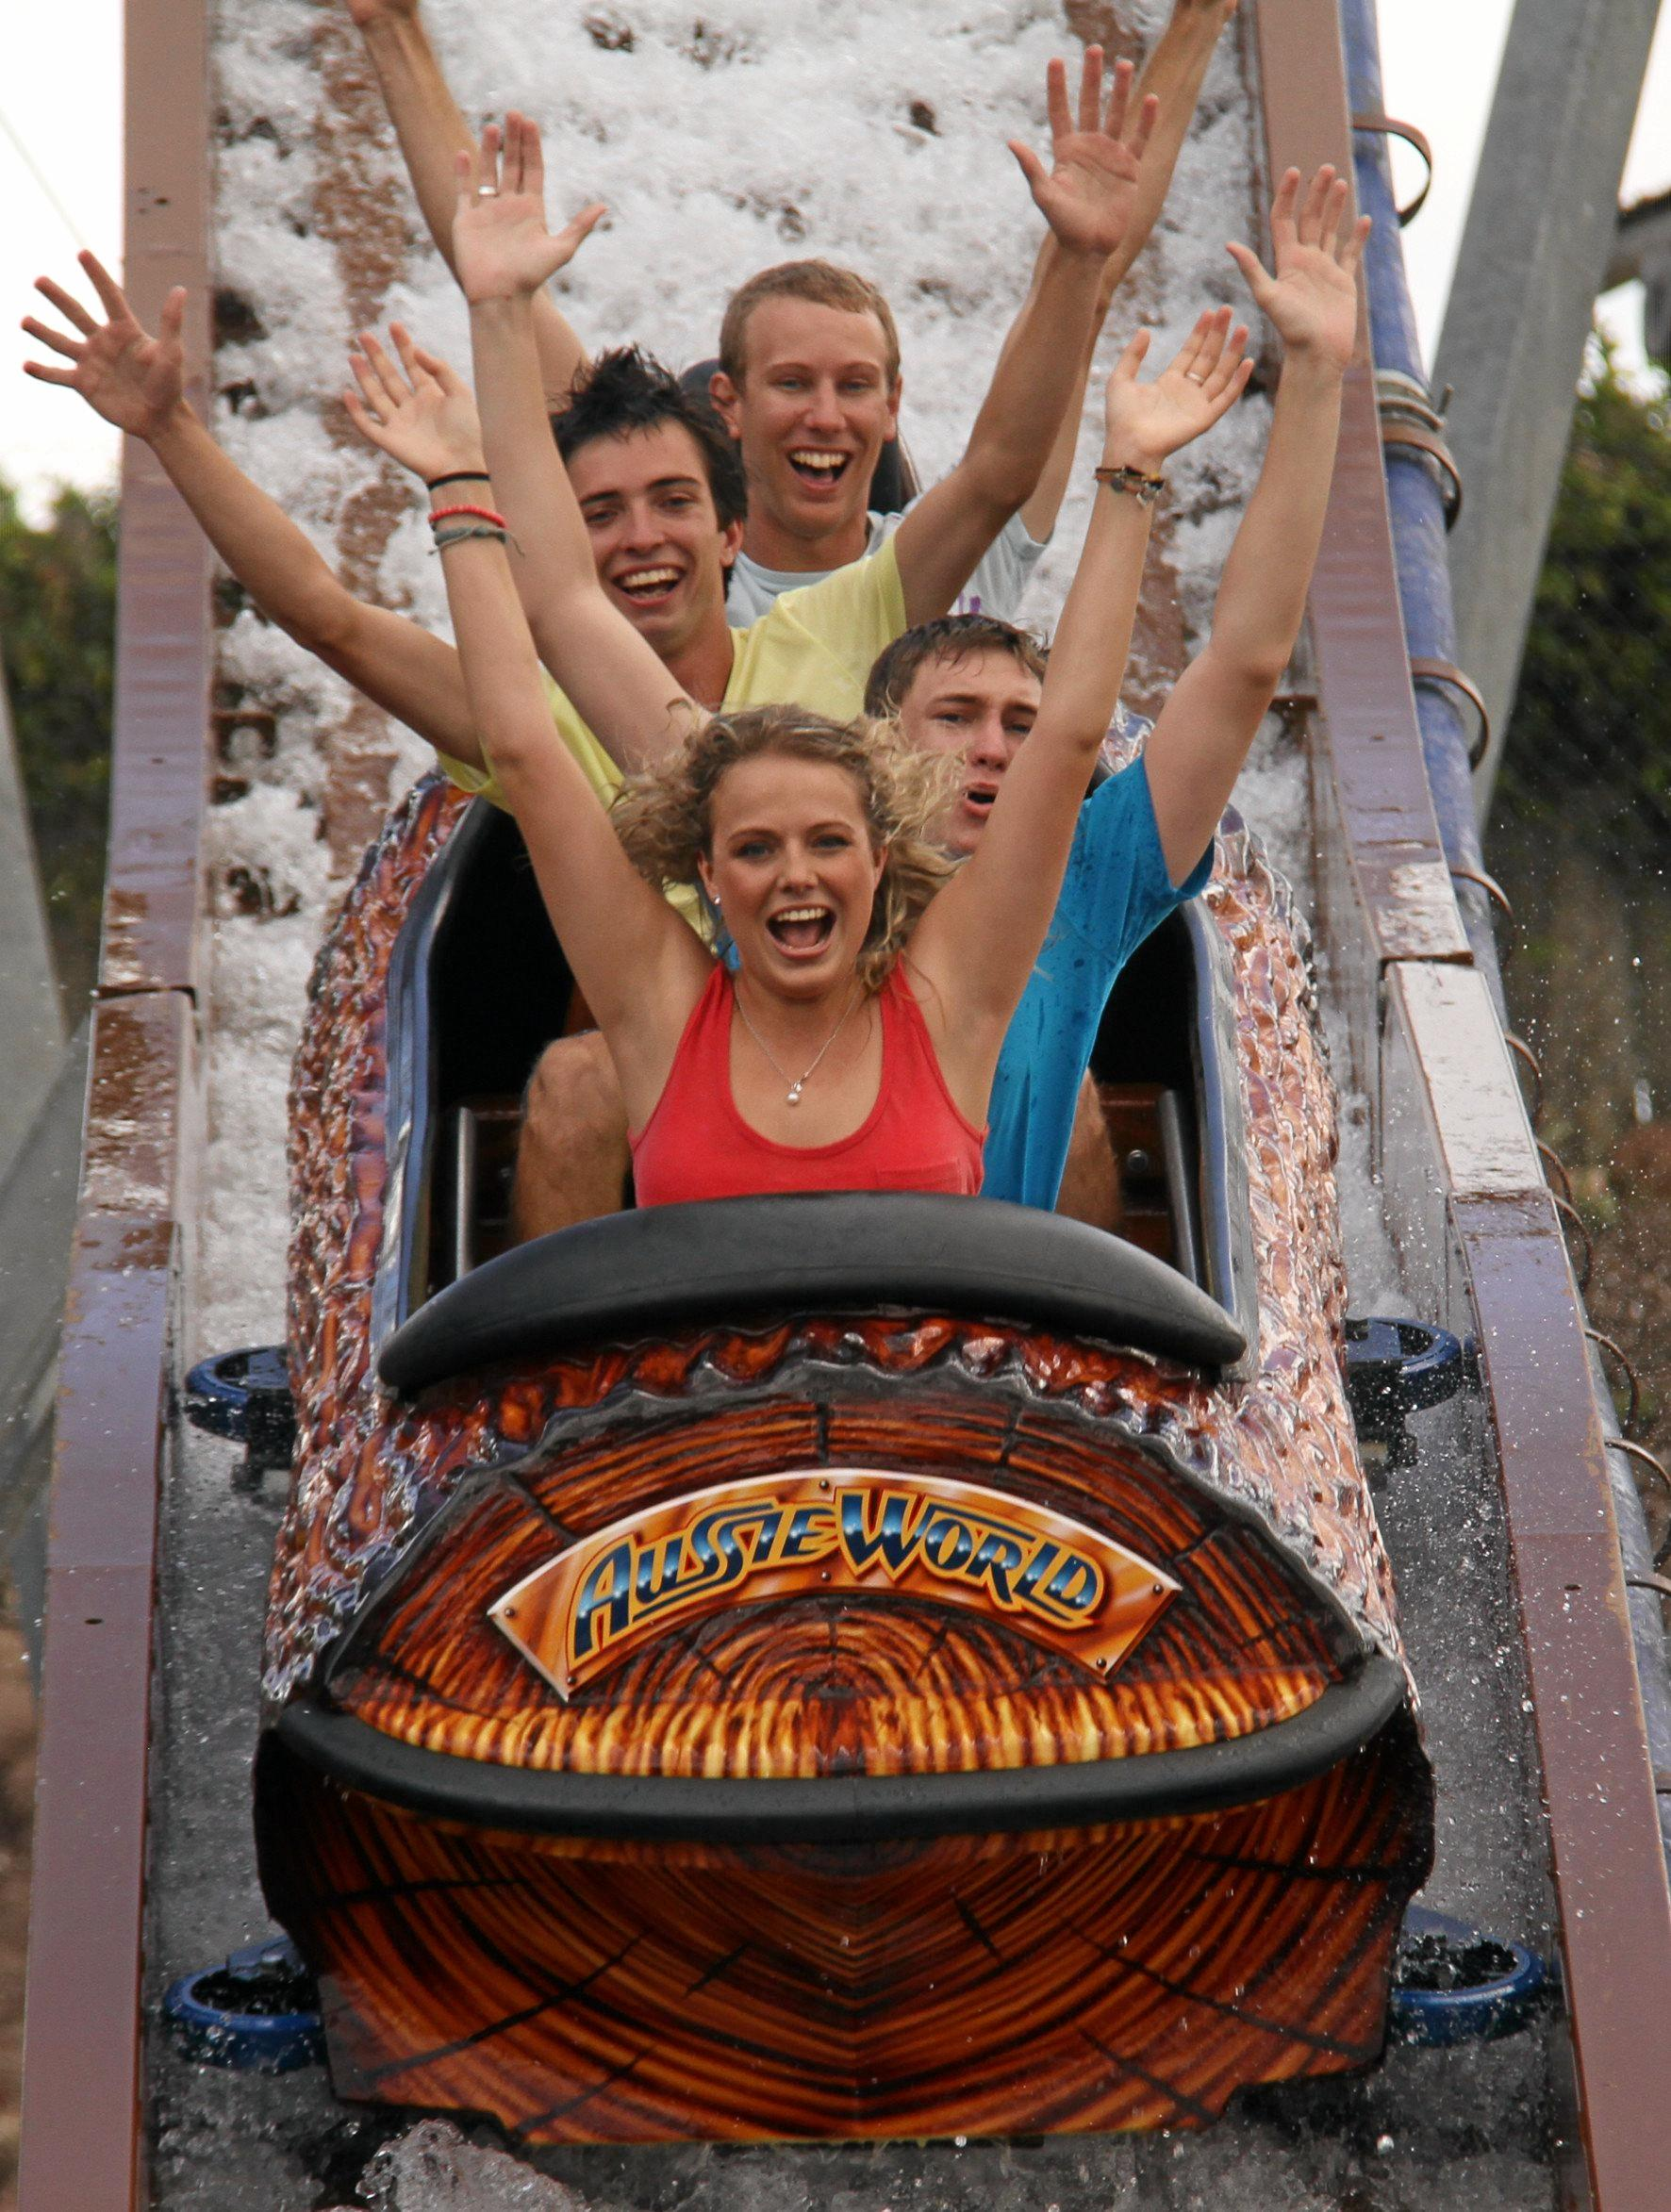 FUN TIMES: Get your family and friends together and enjoy a day together at Aussie World.